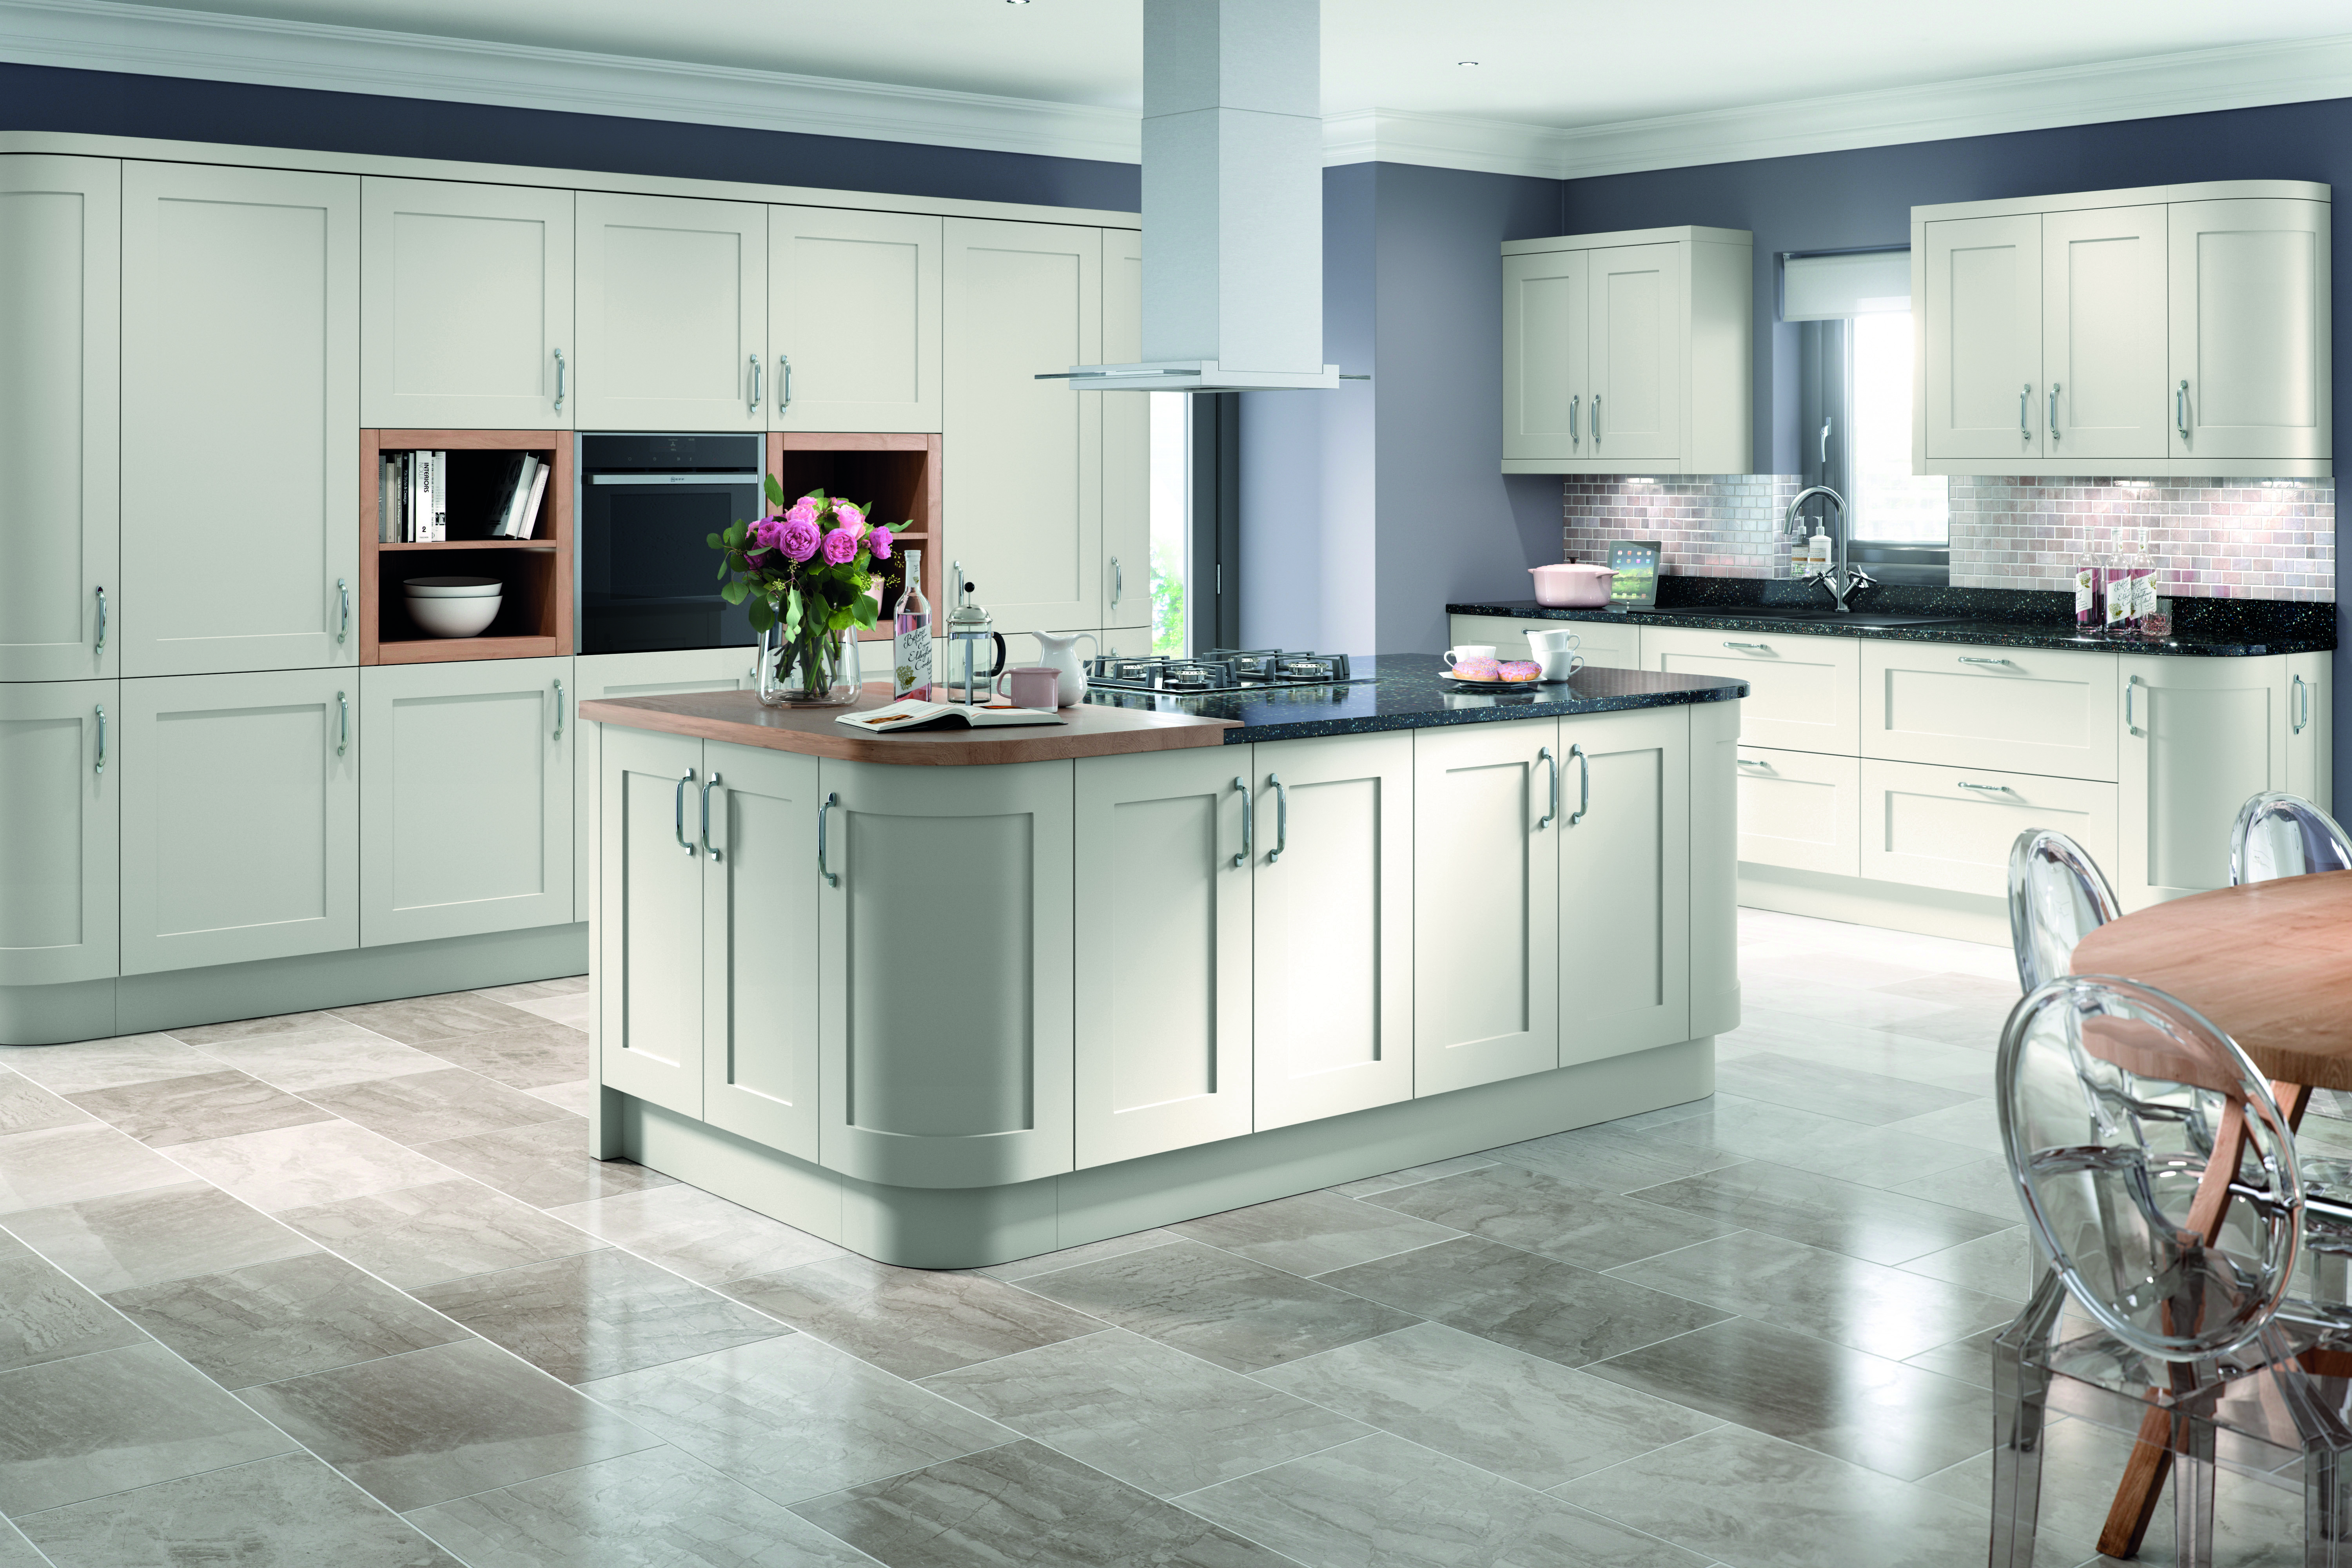 Oxford Light Grey Kitchen Doors Doors And Handles UK - Light grey kitchen doors